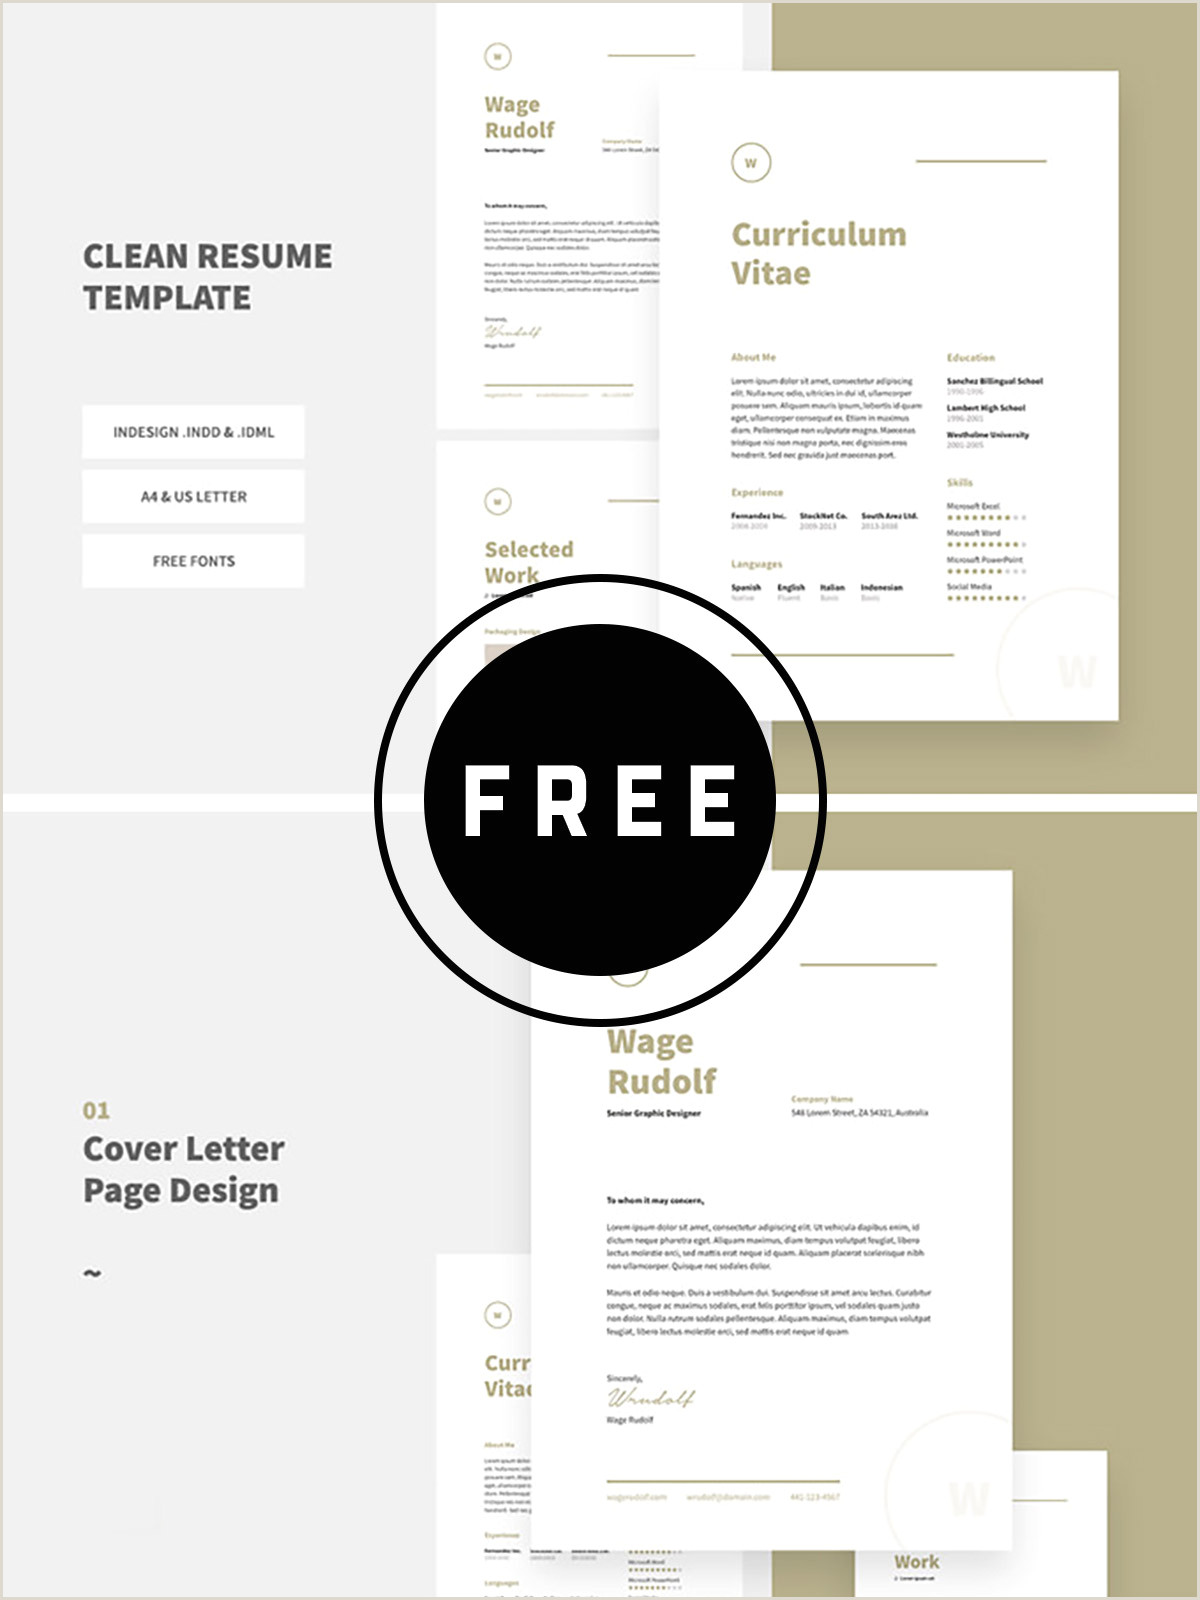 Latest Professional Cv format 2018 98 Awesome Free Resume Templates for 2019 Creativetacos